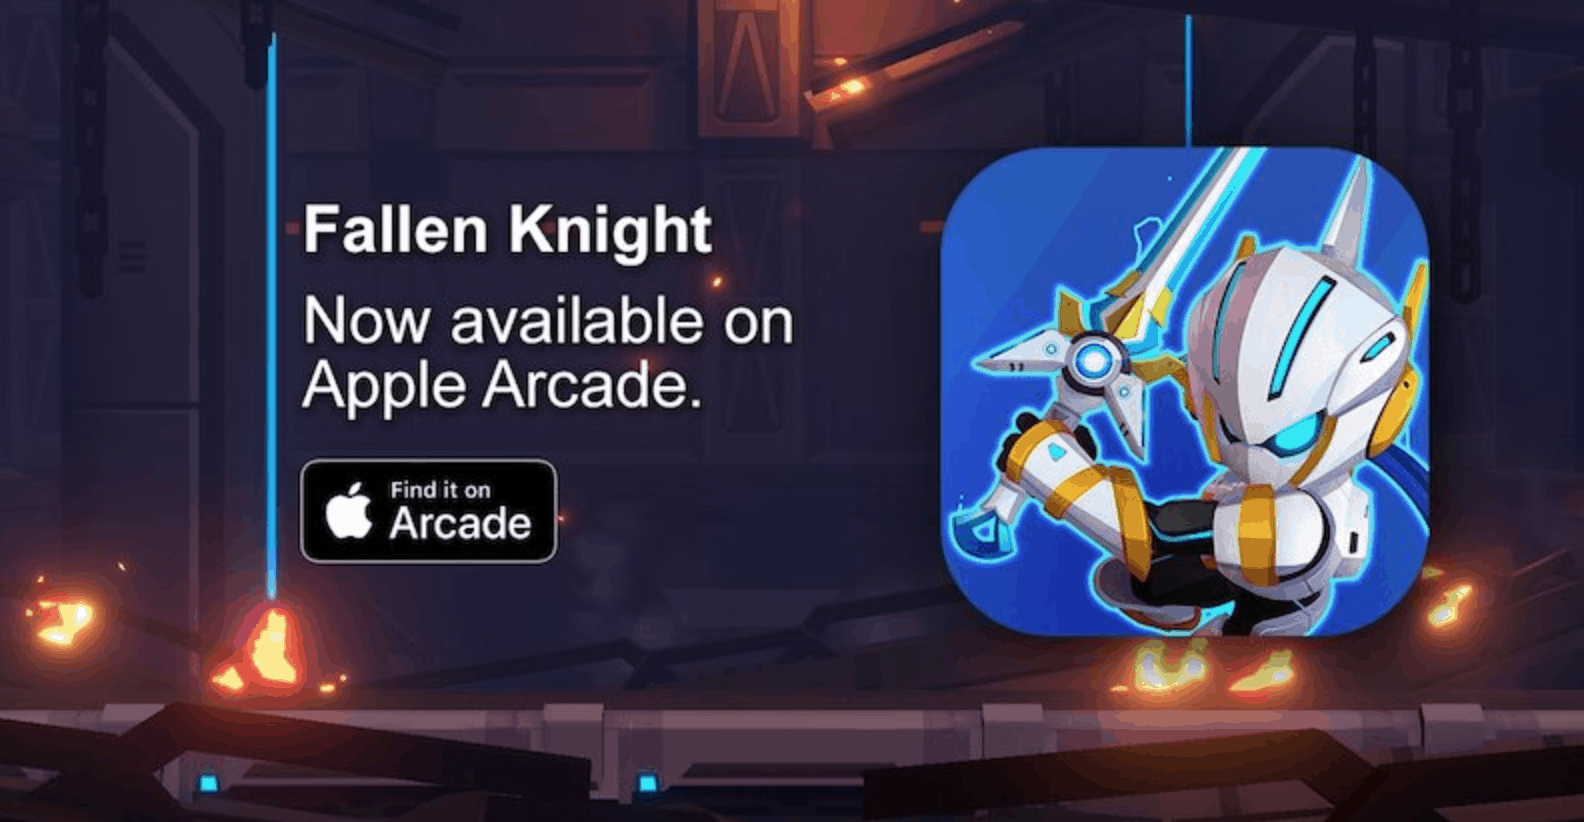 5 New Apple Arcade Games Added for Apple TV, iPad and iPhone